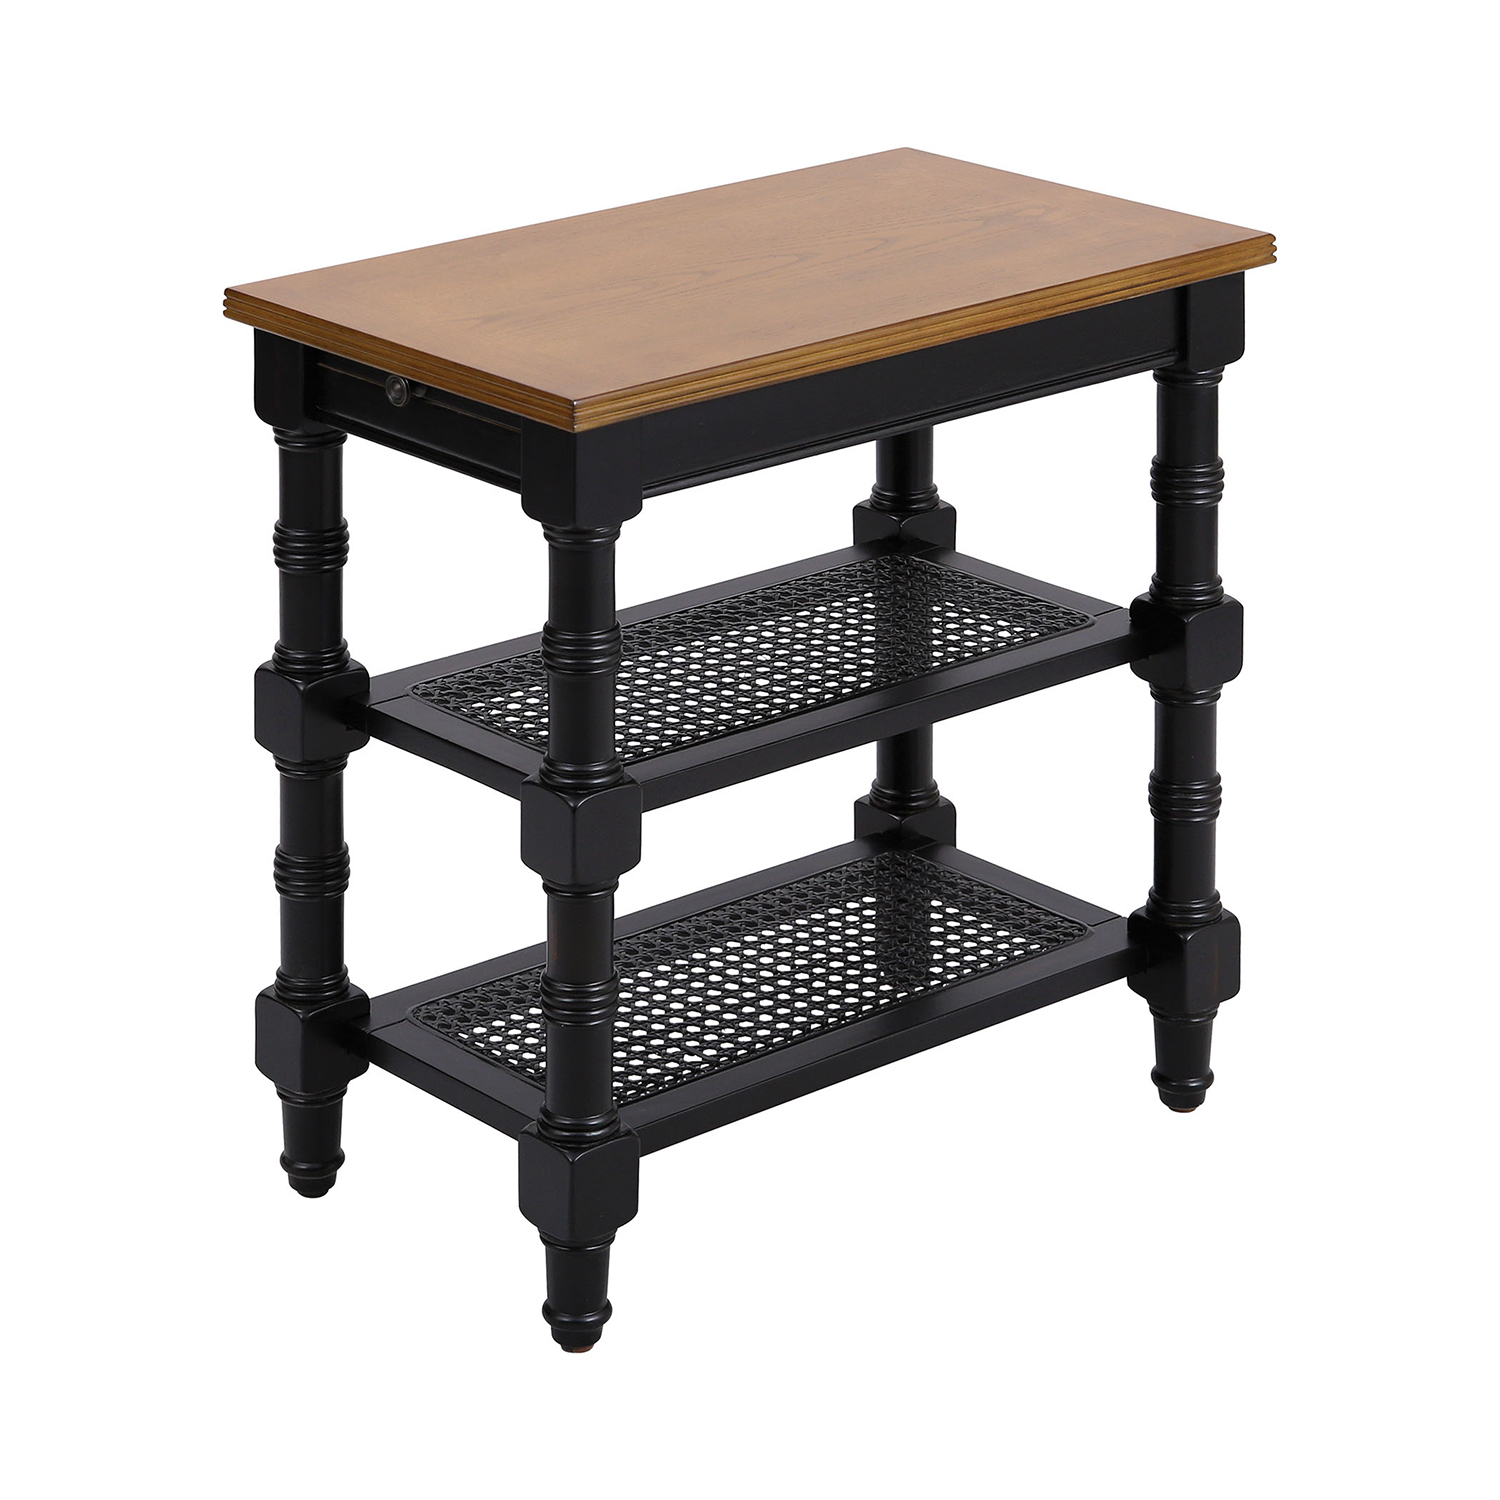 stein world seneca falls black and nostalgic oak accent table hover zoom floor cabinet cabin furniture plastic outdoor wine tray solid tables wicker bedside end with pipe legs